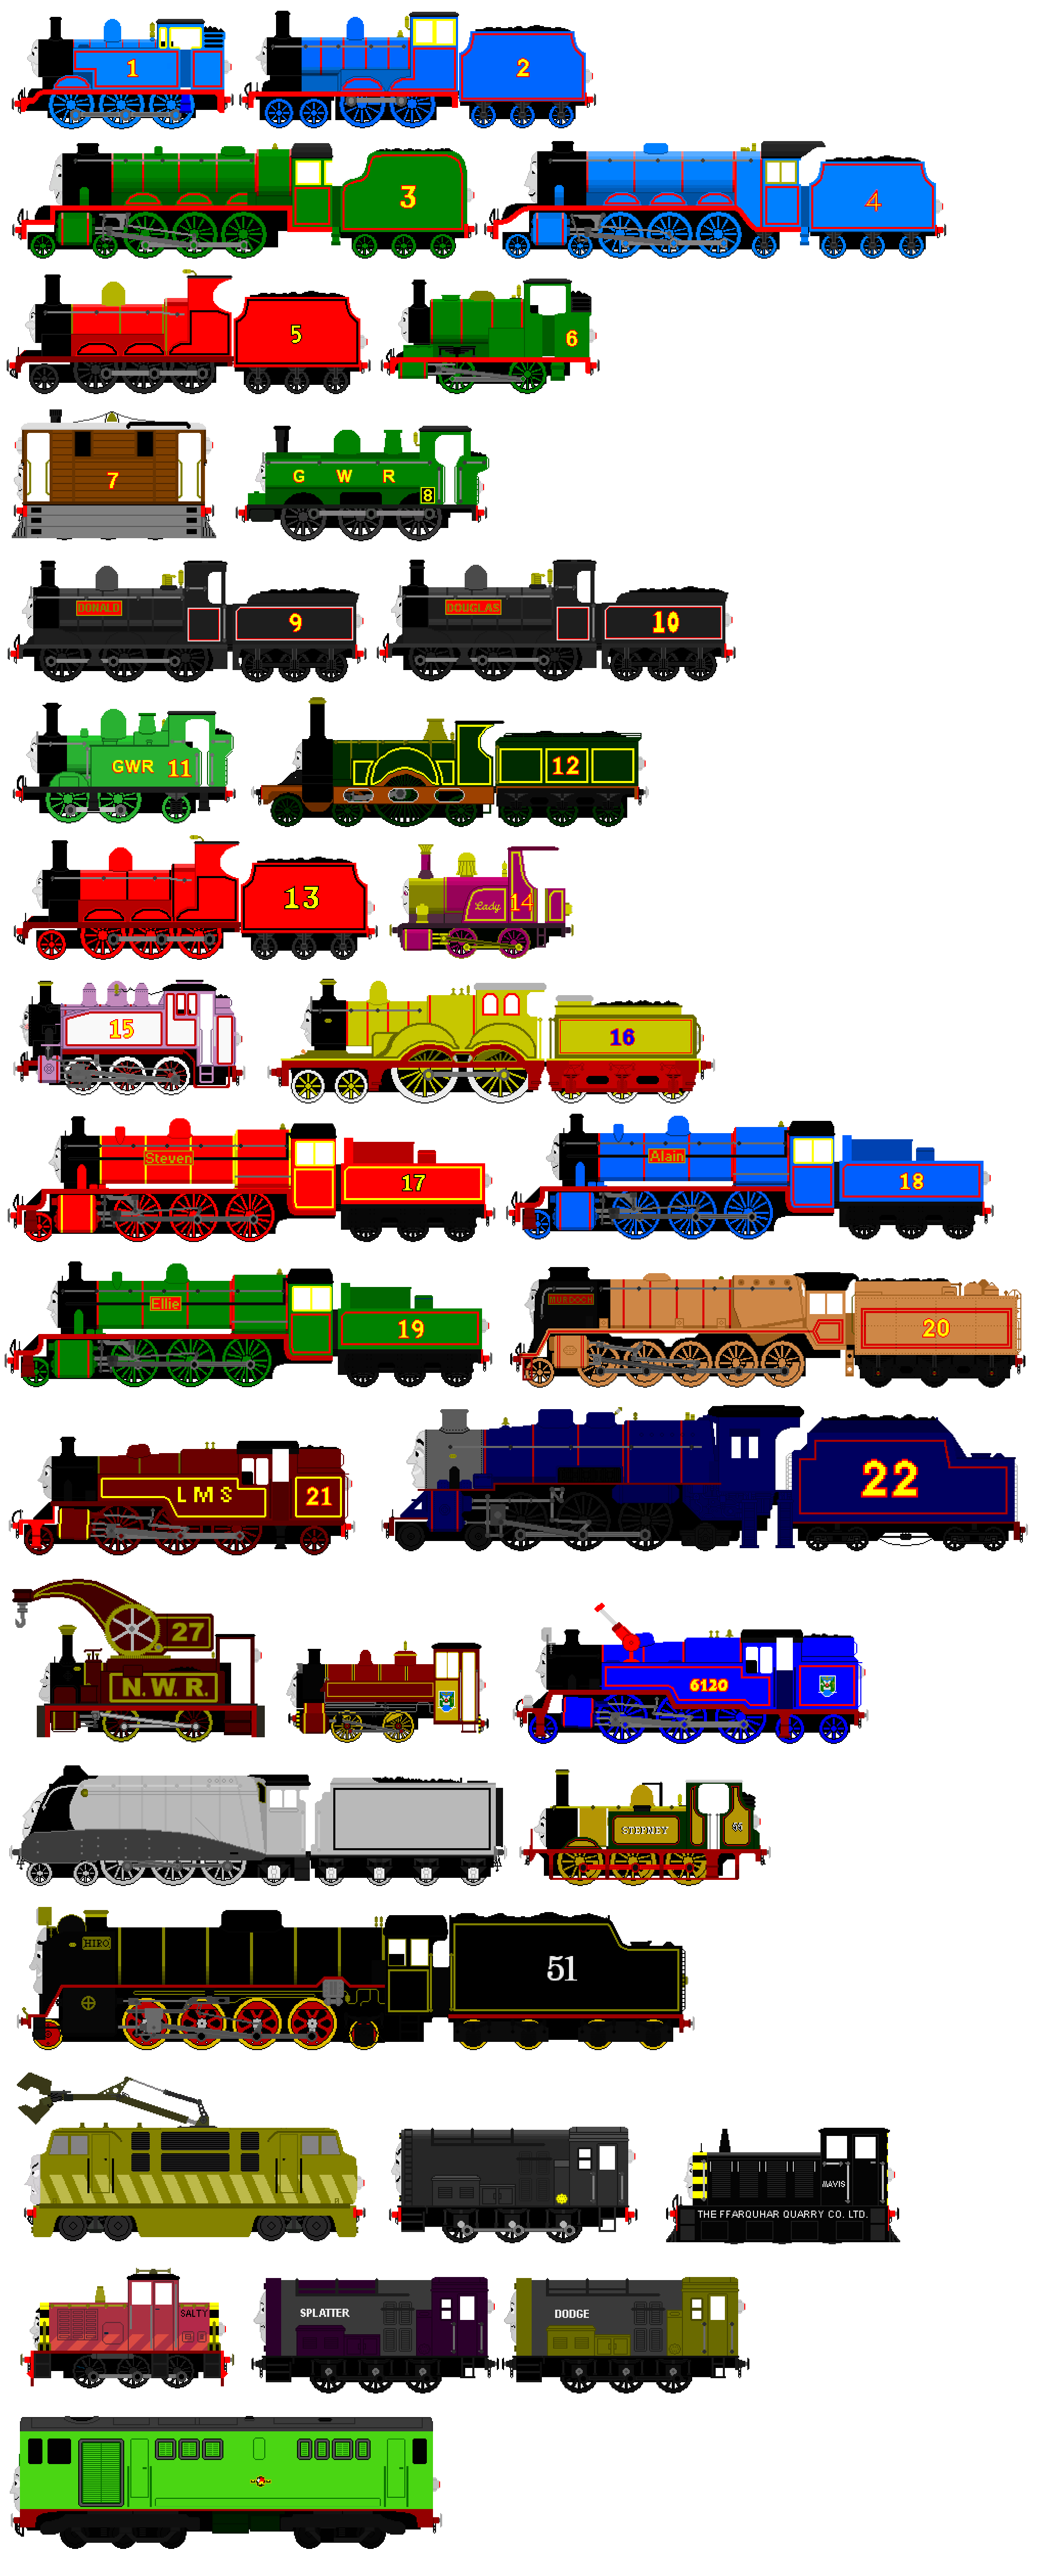 Thomas and Friends Animated Characters 1 by JamesFan1991 on